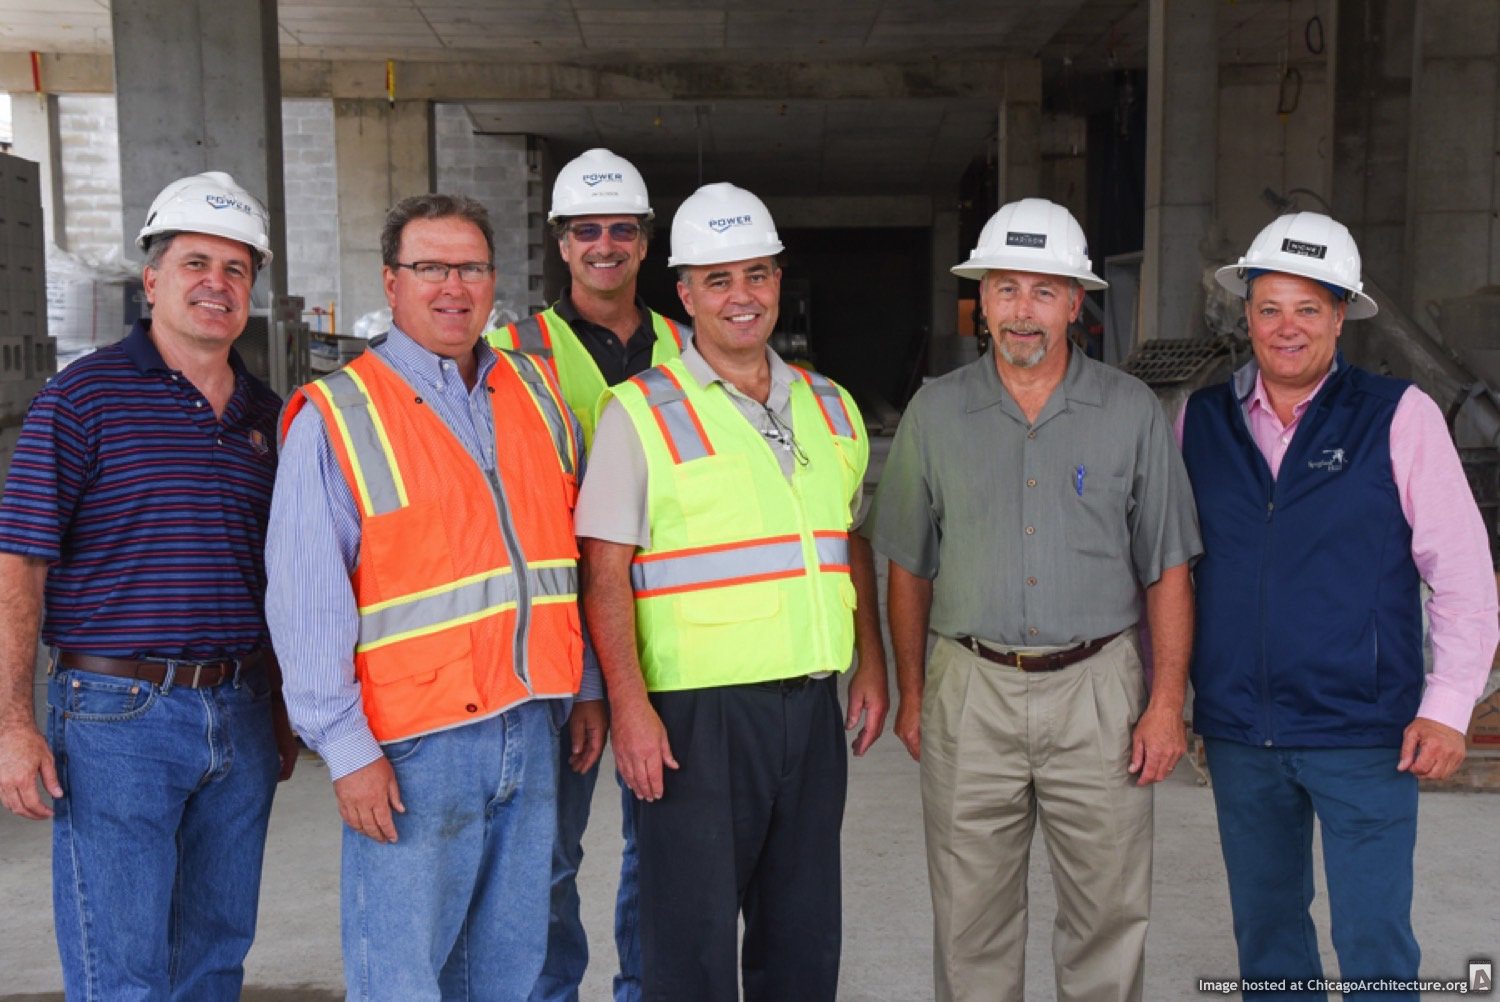 Left to right: Robert Van Deven, vice president, Power Construction Company; William J. Wolk, president, Ascend Real Estate Group; Jim Glosson, superintendent, Power Construction Company; Patrick O'Connor, construction manager, Intercontinental Development Inc.; Walter A. Rebenson, CEO, Ascend Real Estate Group; and Joseph Salamone, principal, Ascend Real Estate Group (Courtesy of Ascend Real Estate Group)